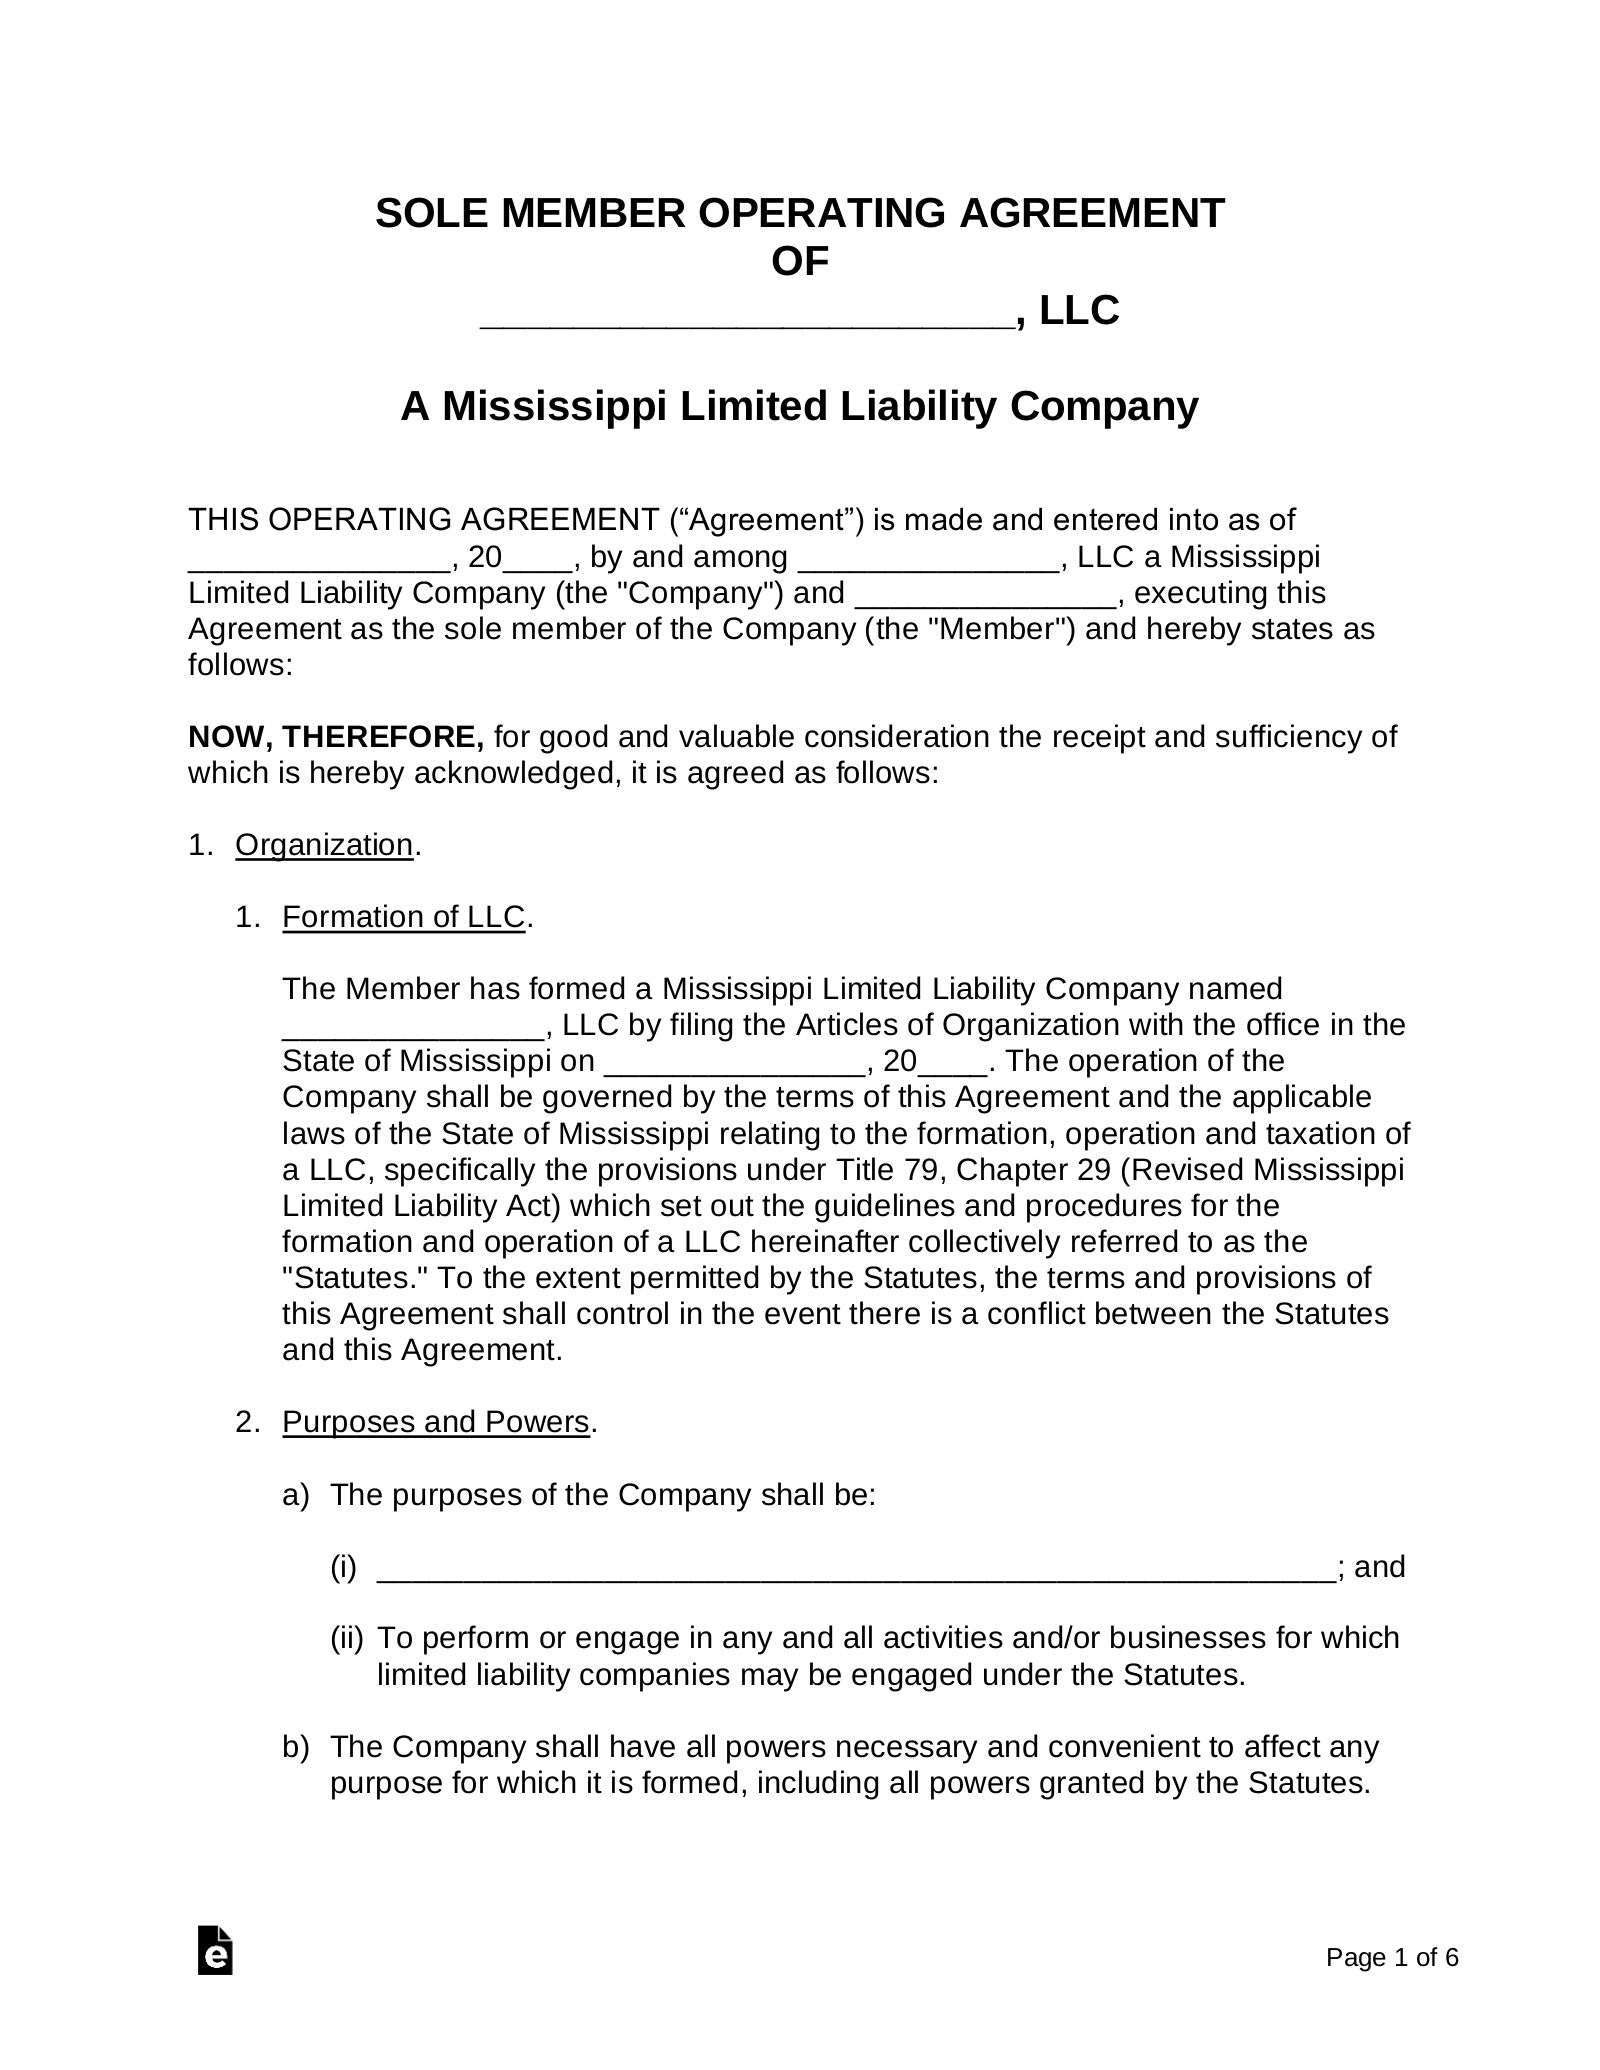 An llc operating agreement describes the operating rules of a limited liability company. Free Mississippi Llc Operating Agreement Templates Word Pdf Eforms